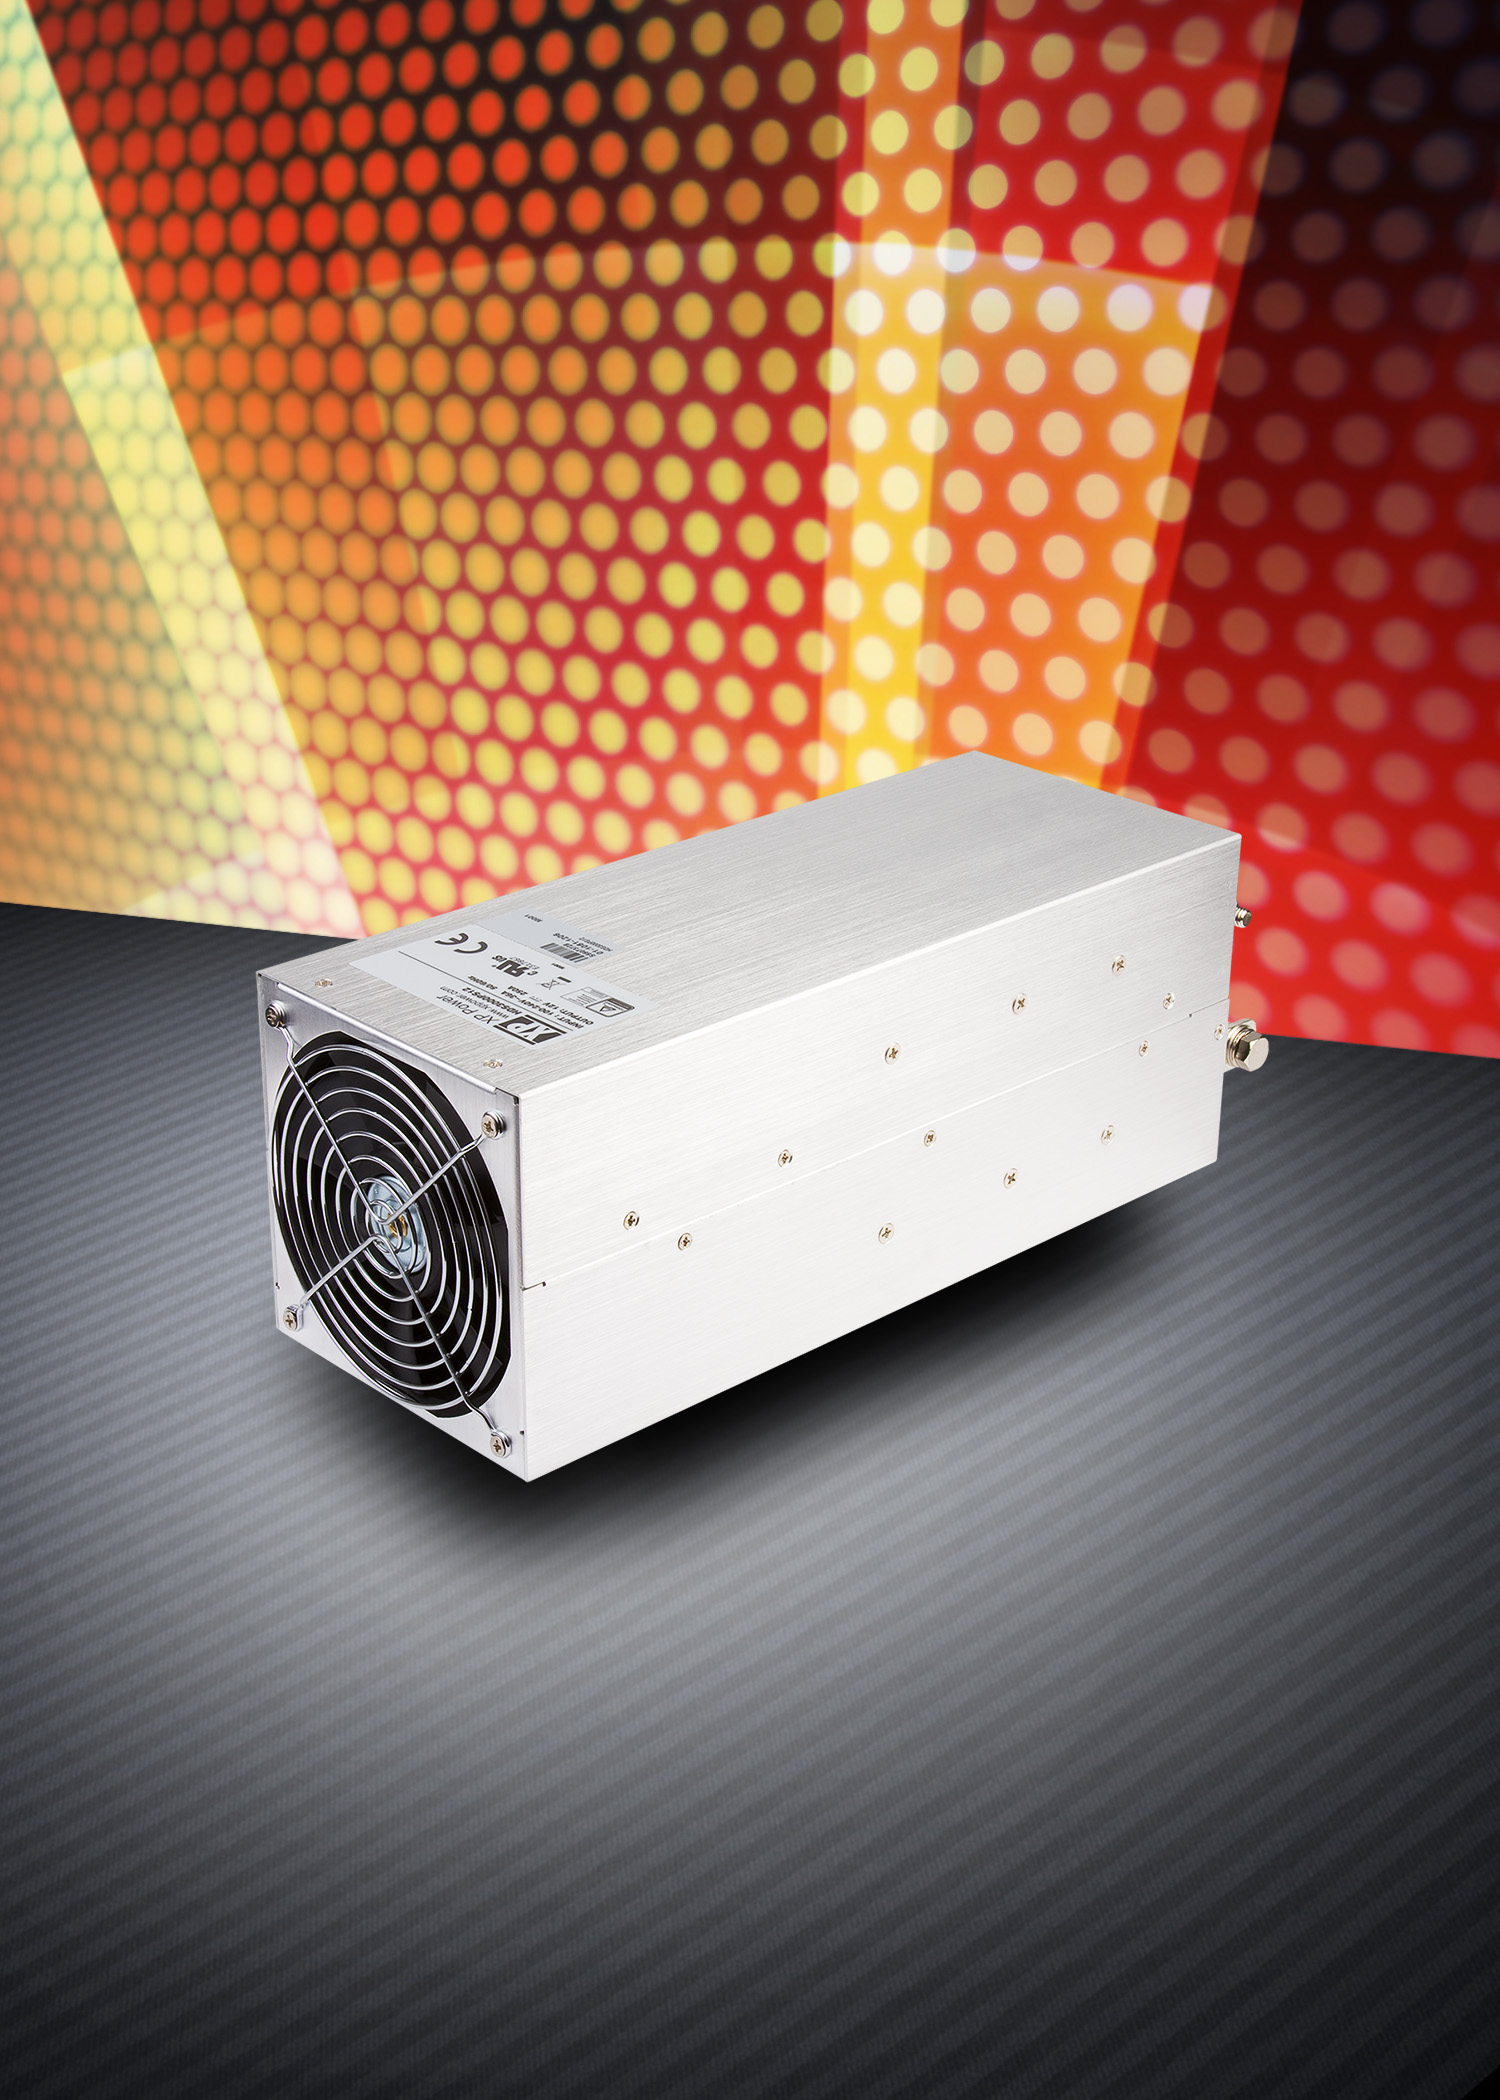 3000W AC/DC power supply provides current down to zero